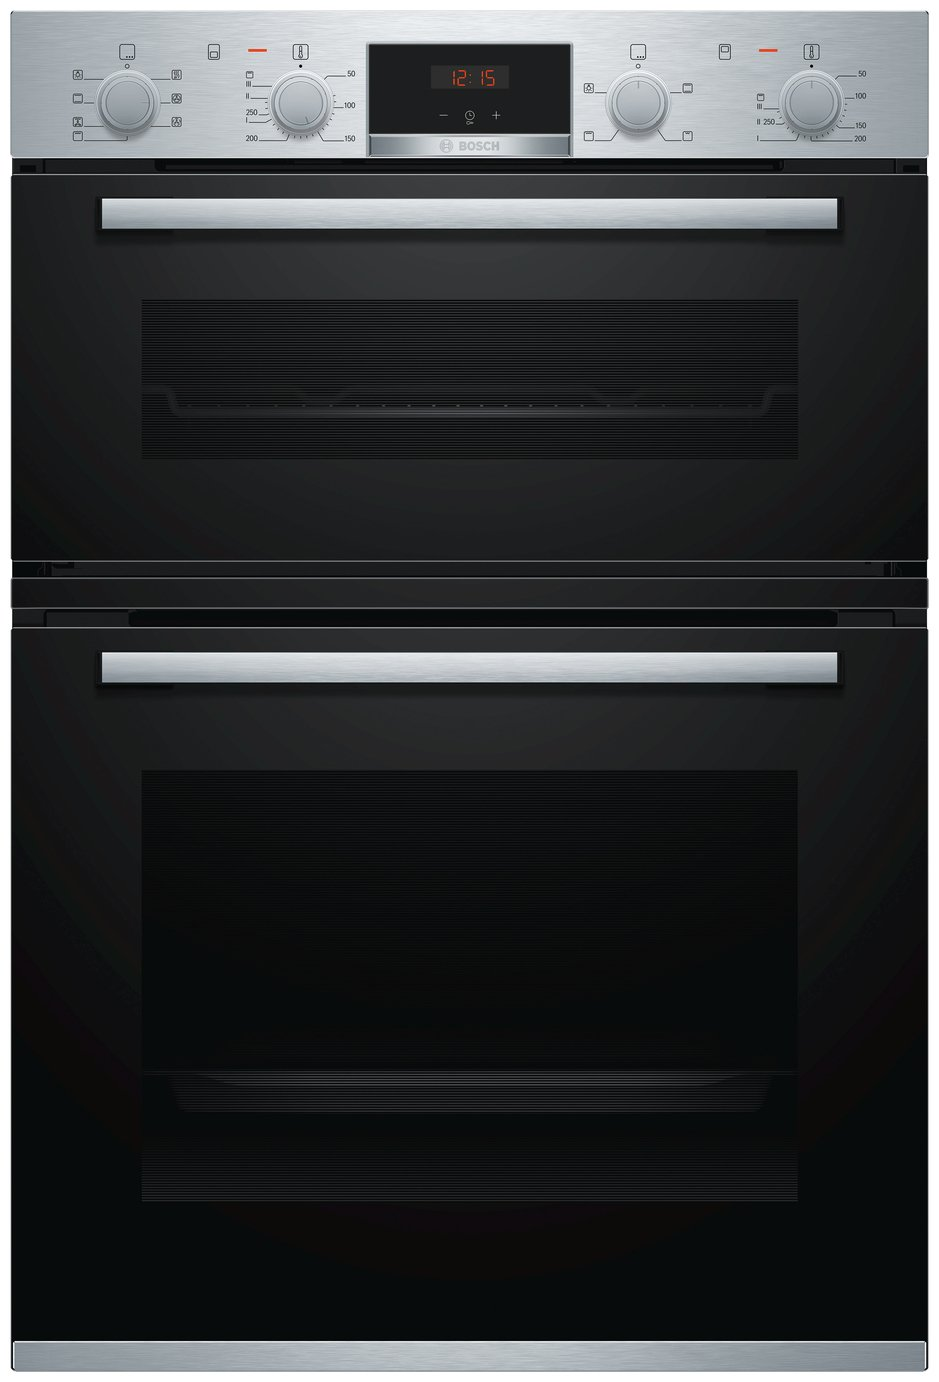 Bosch MBS533BS0B 59.4cm Double Electric Cooker - S/ Steel from Bosch